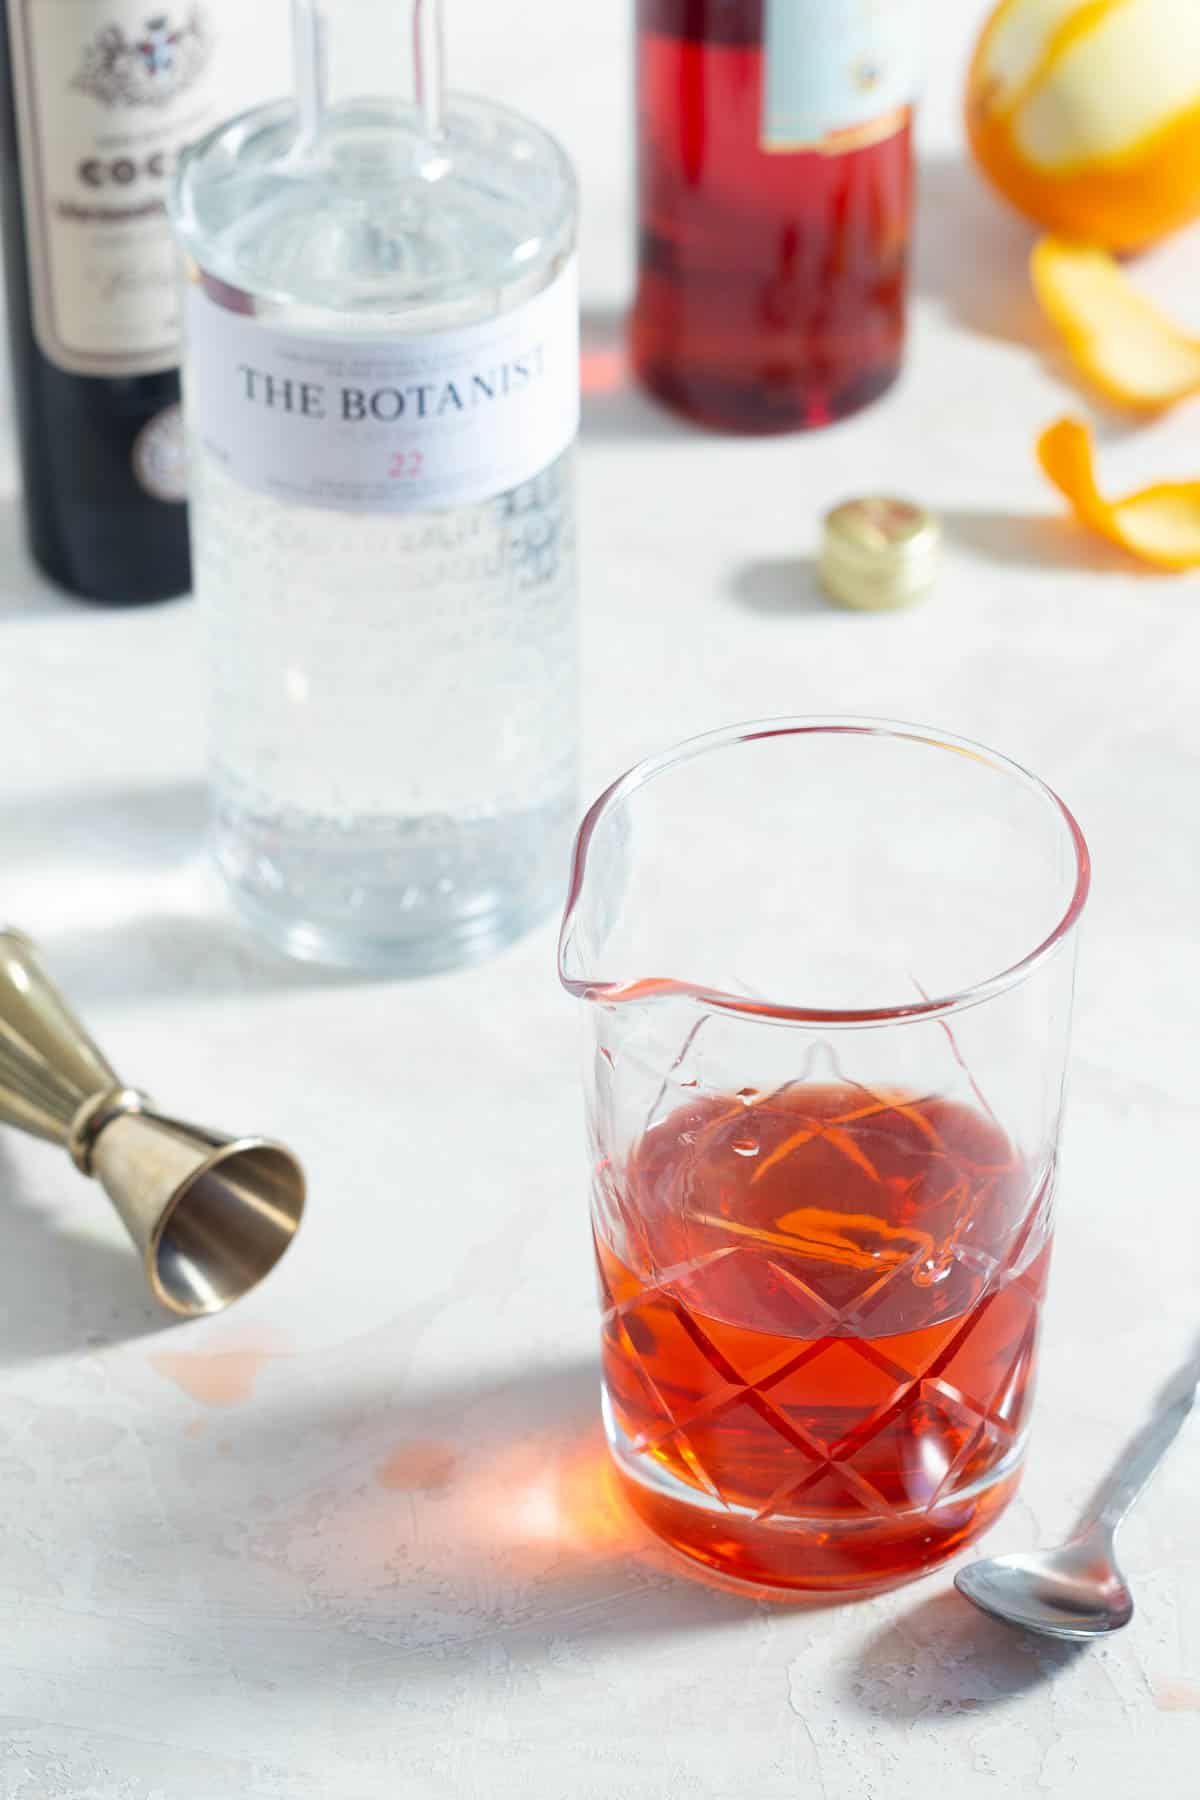 Negroni being made in a mixing glass with a spoon and bottles of liquor on the side